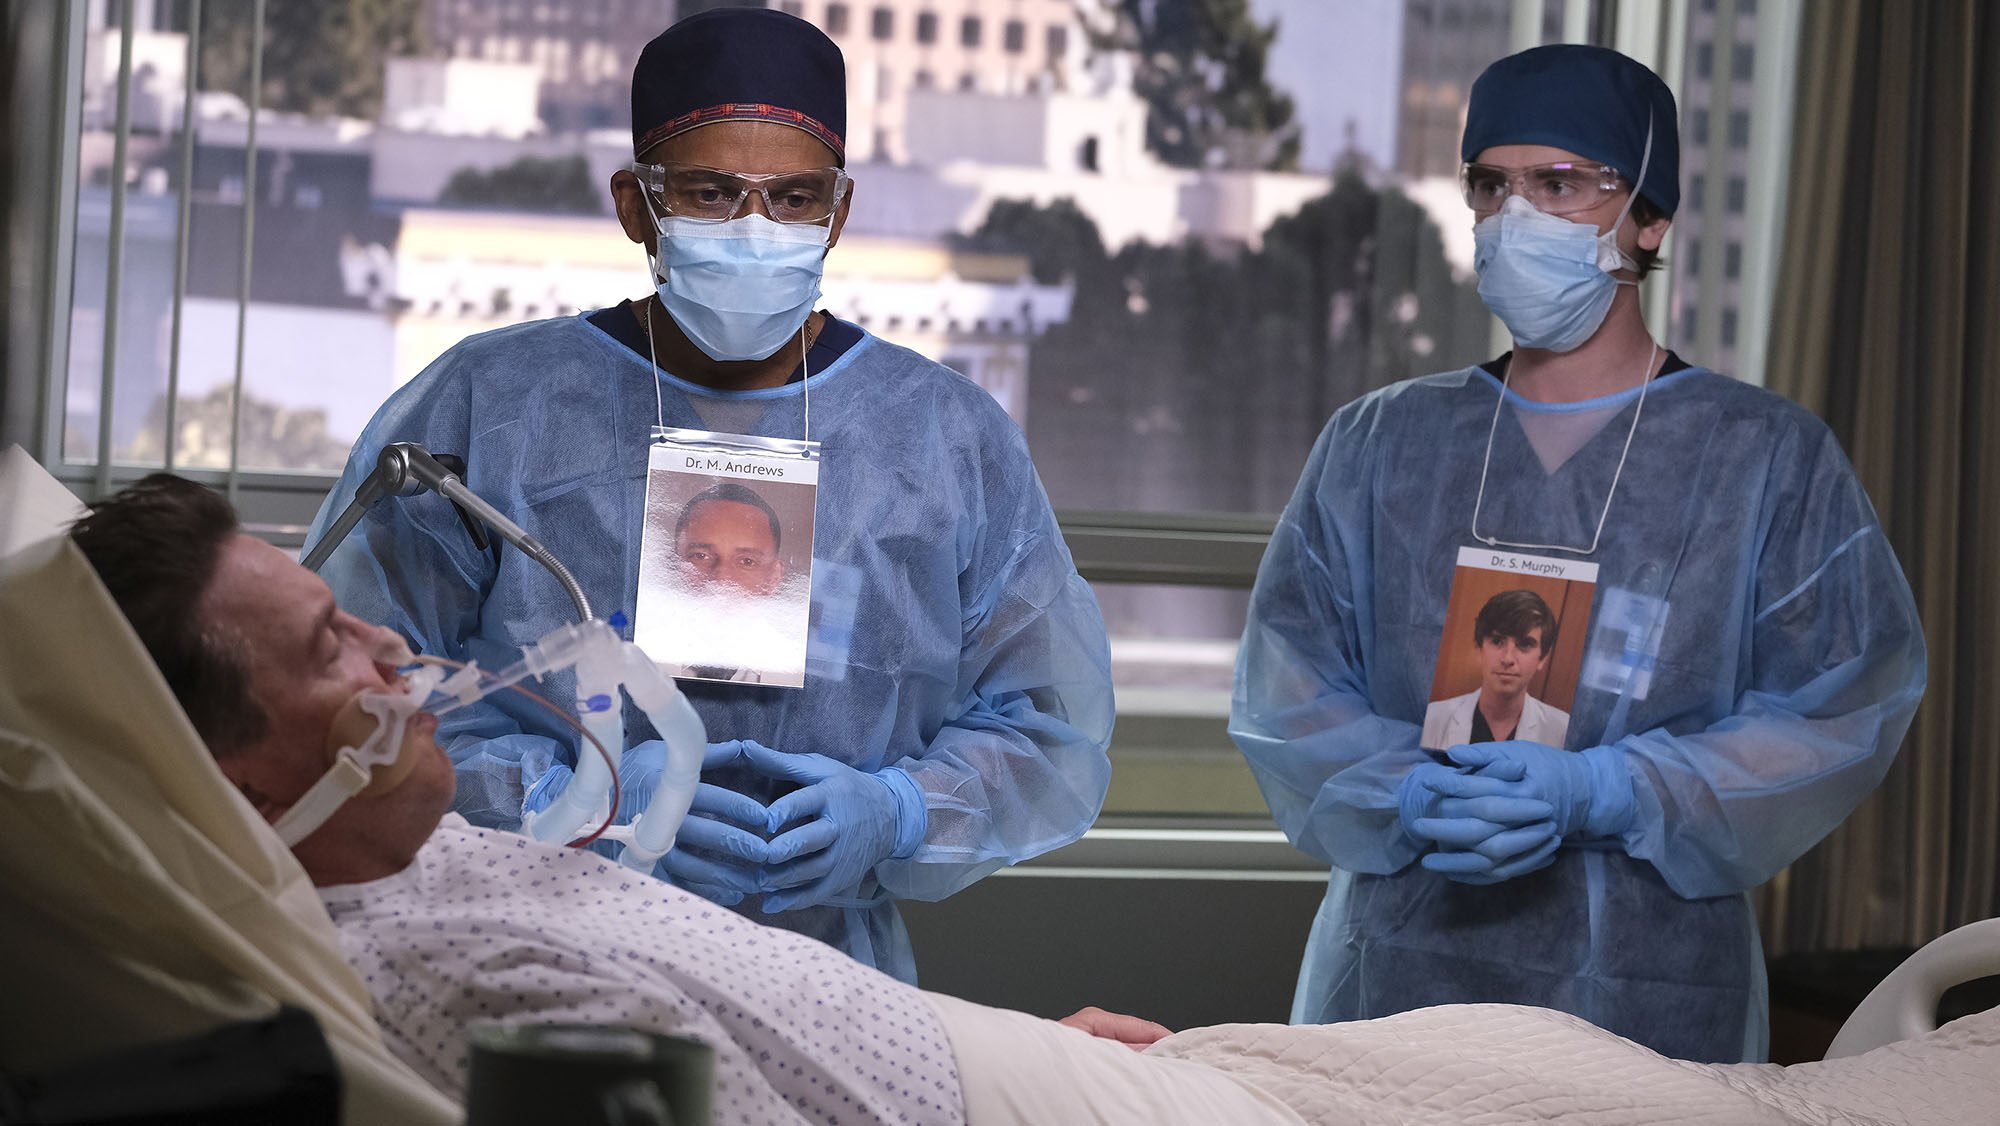 Review: The Good Doctor S04E01+E02 – An vorderster Front (Frontline) I & II